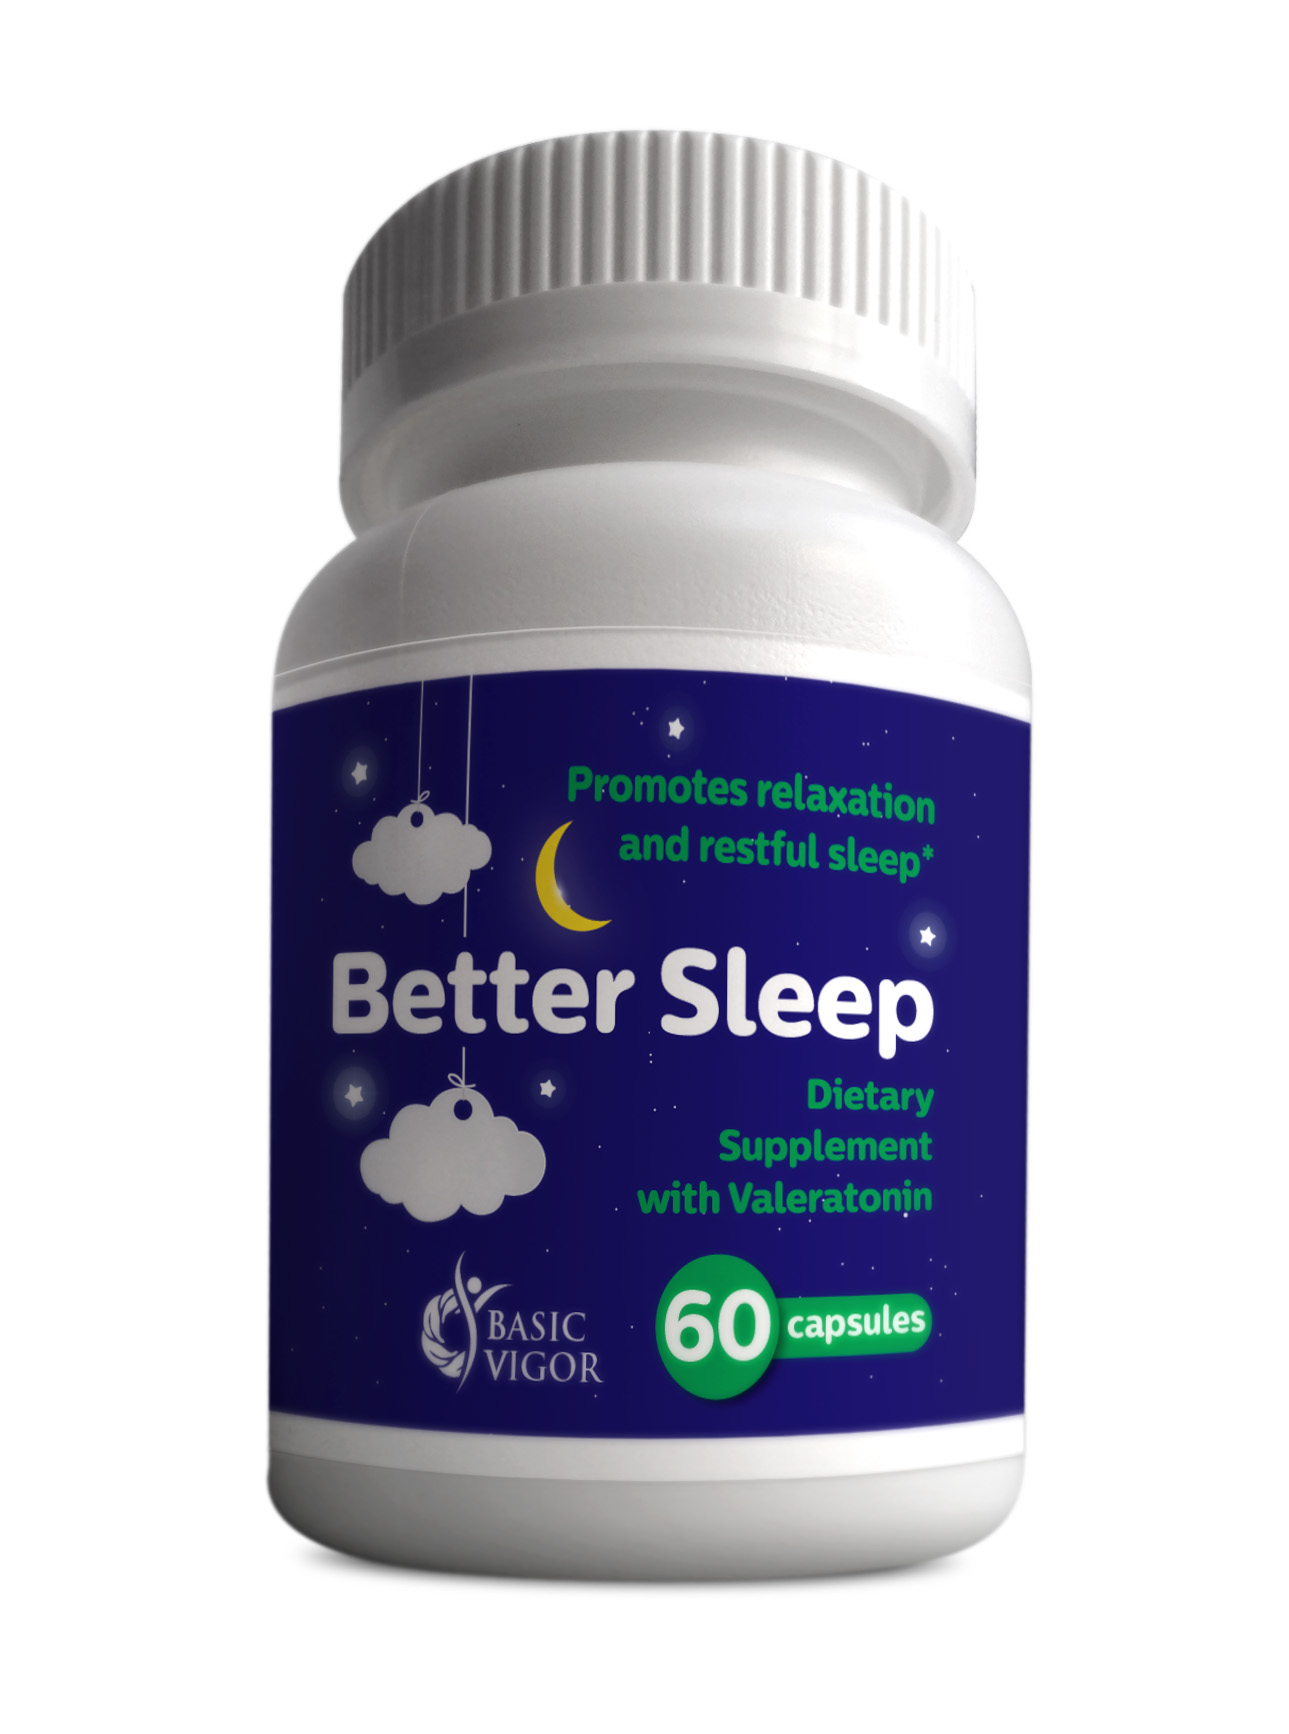 Better Sleep Valeratonin Natural Relaxation Aid from Basic Vigor Nutraceuticals